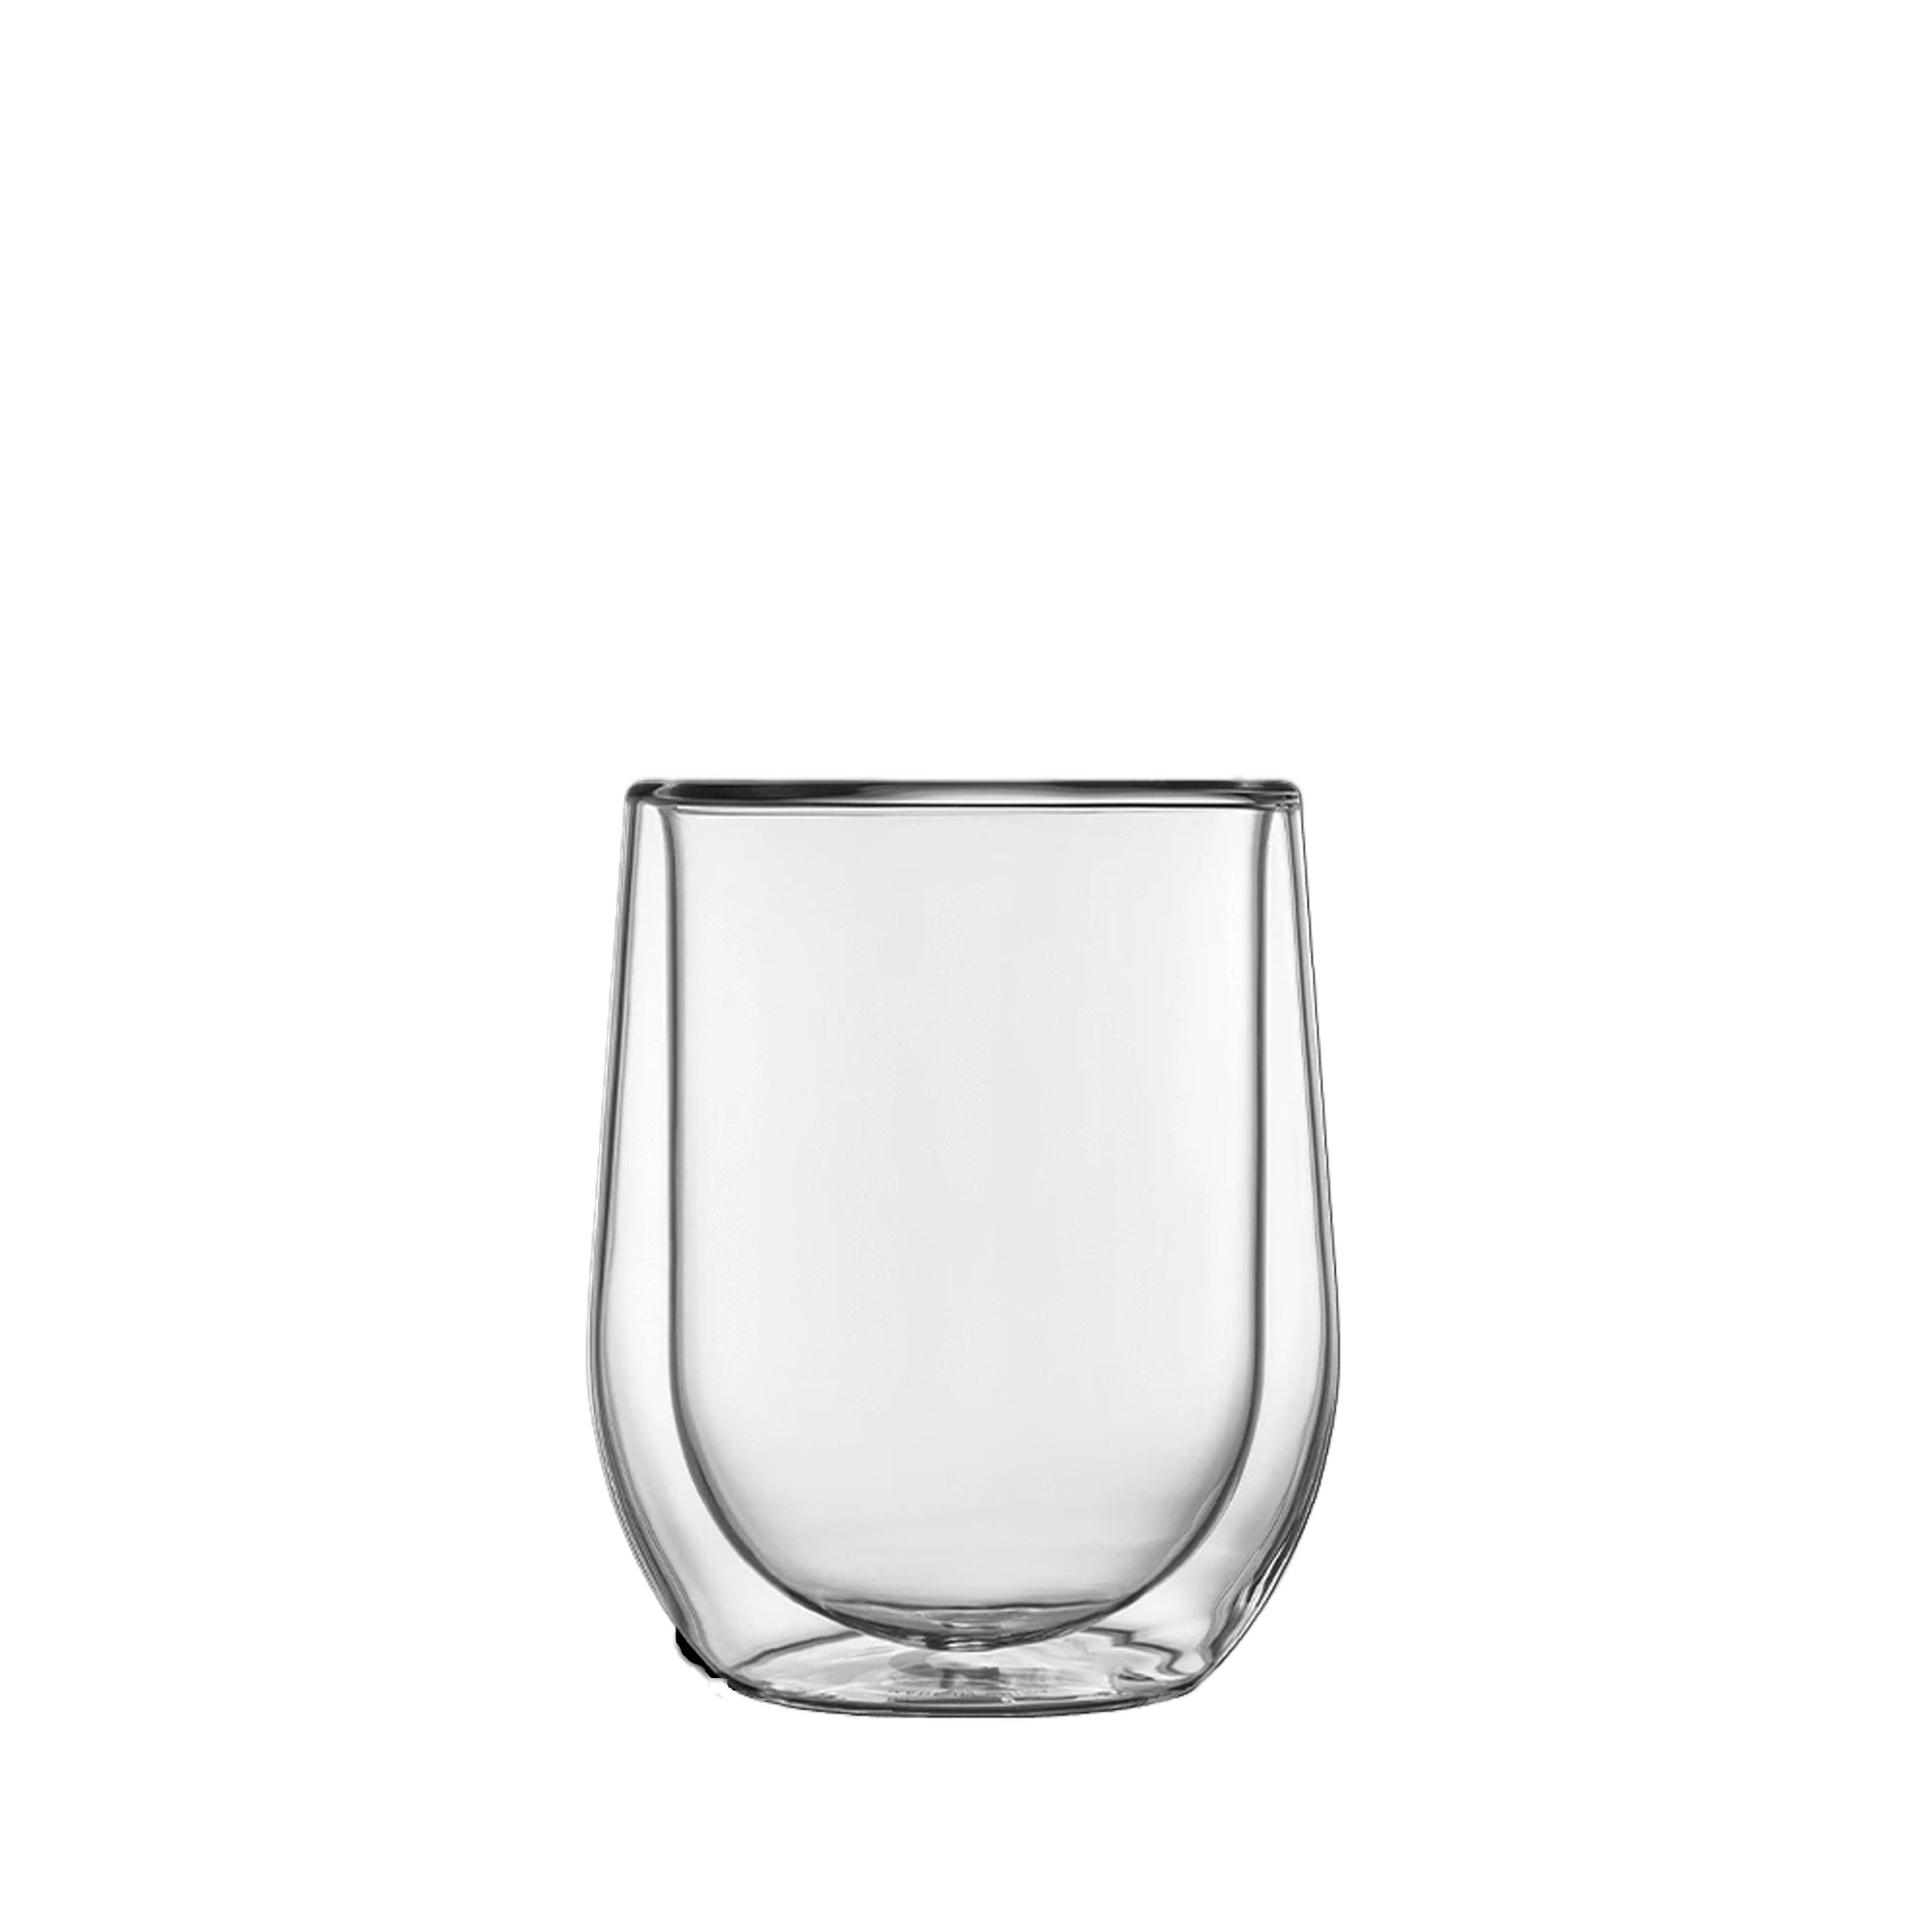 Corkcicle Wine Glass Stemless Cup Set